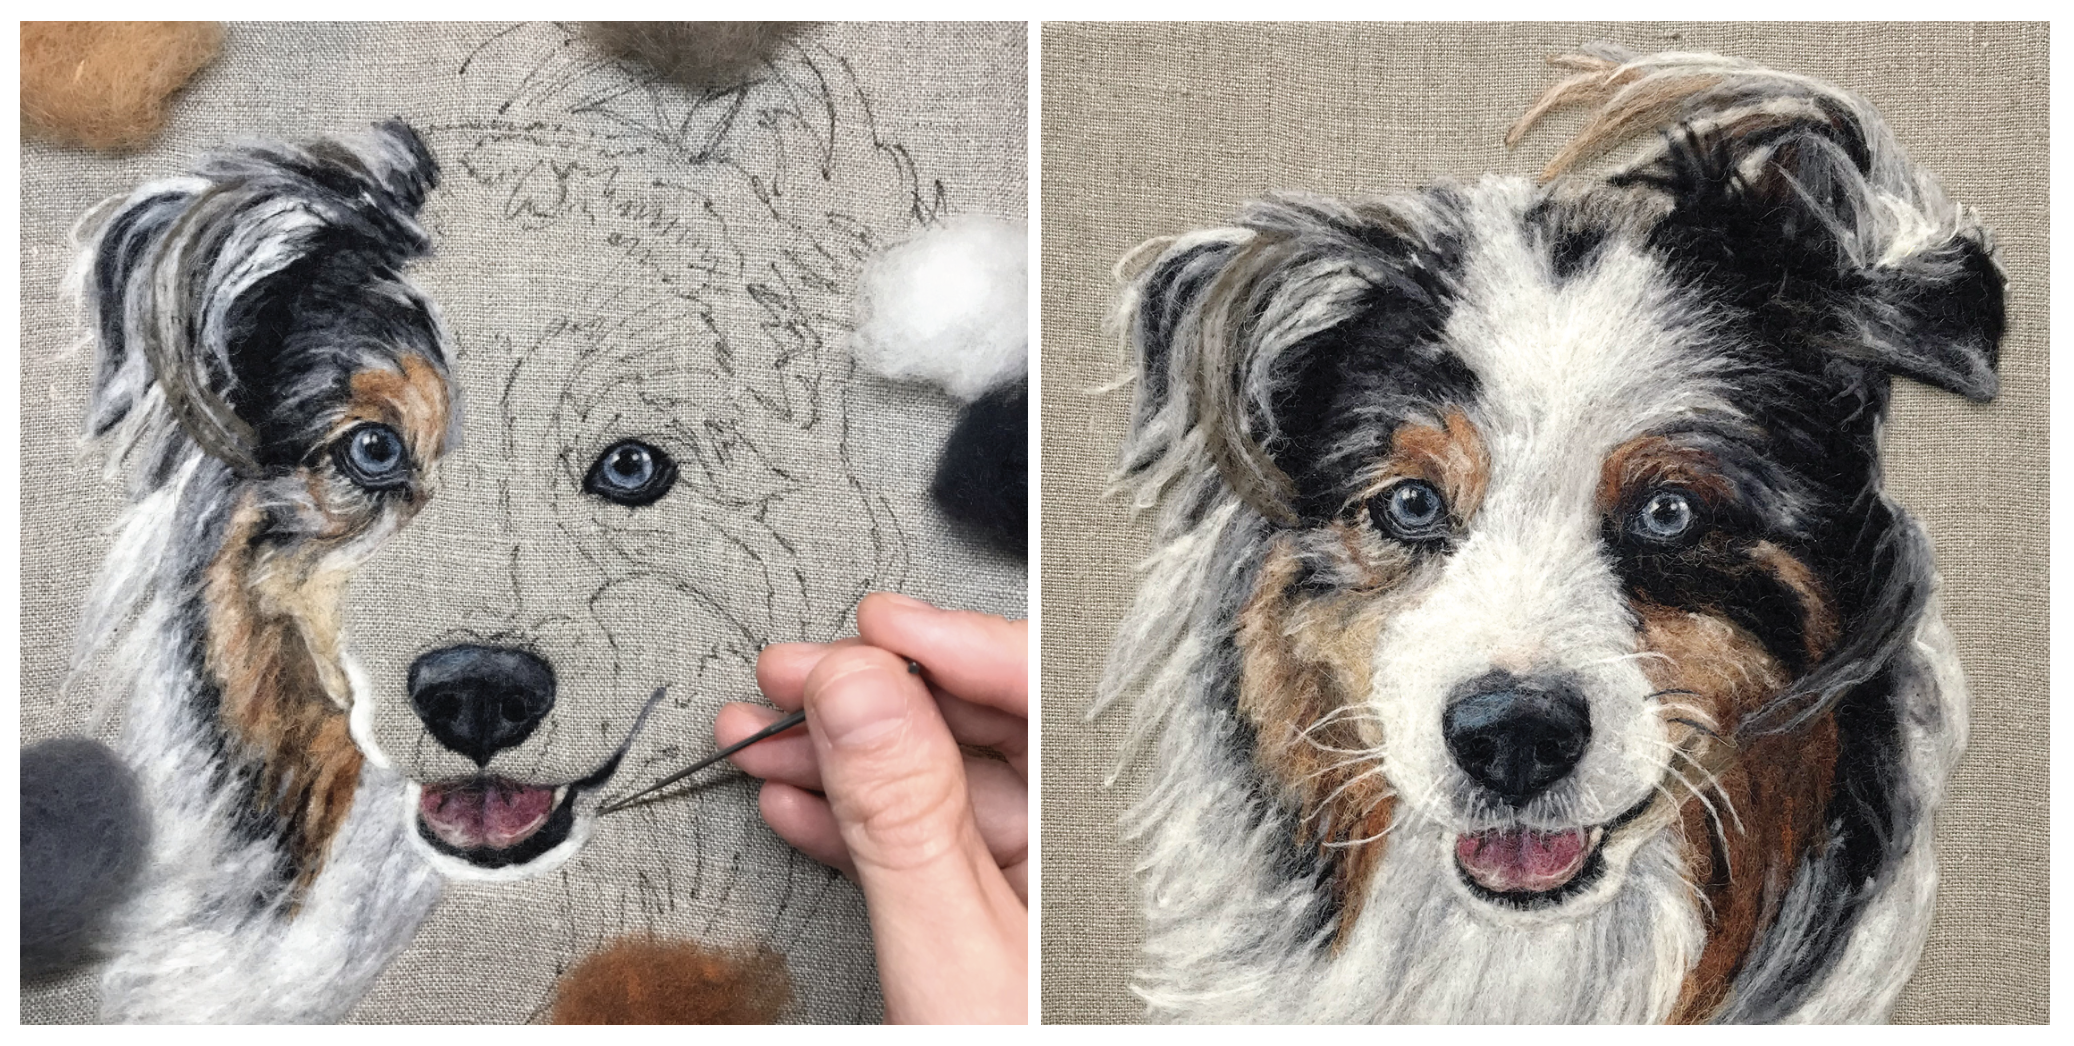 Progress shot and completed portrait.